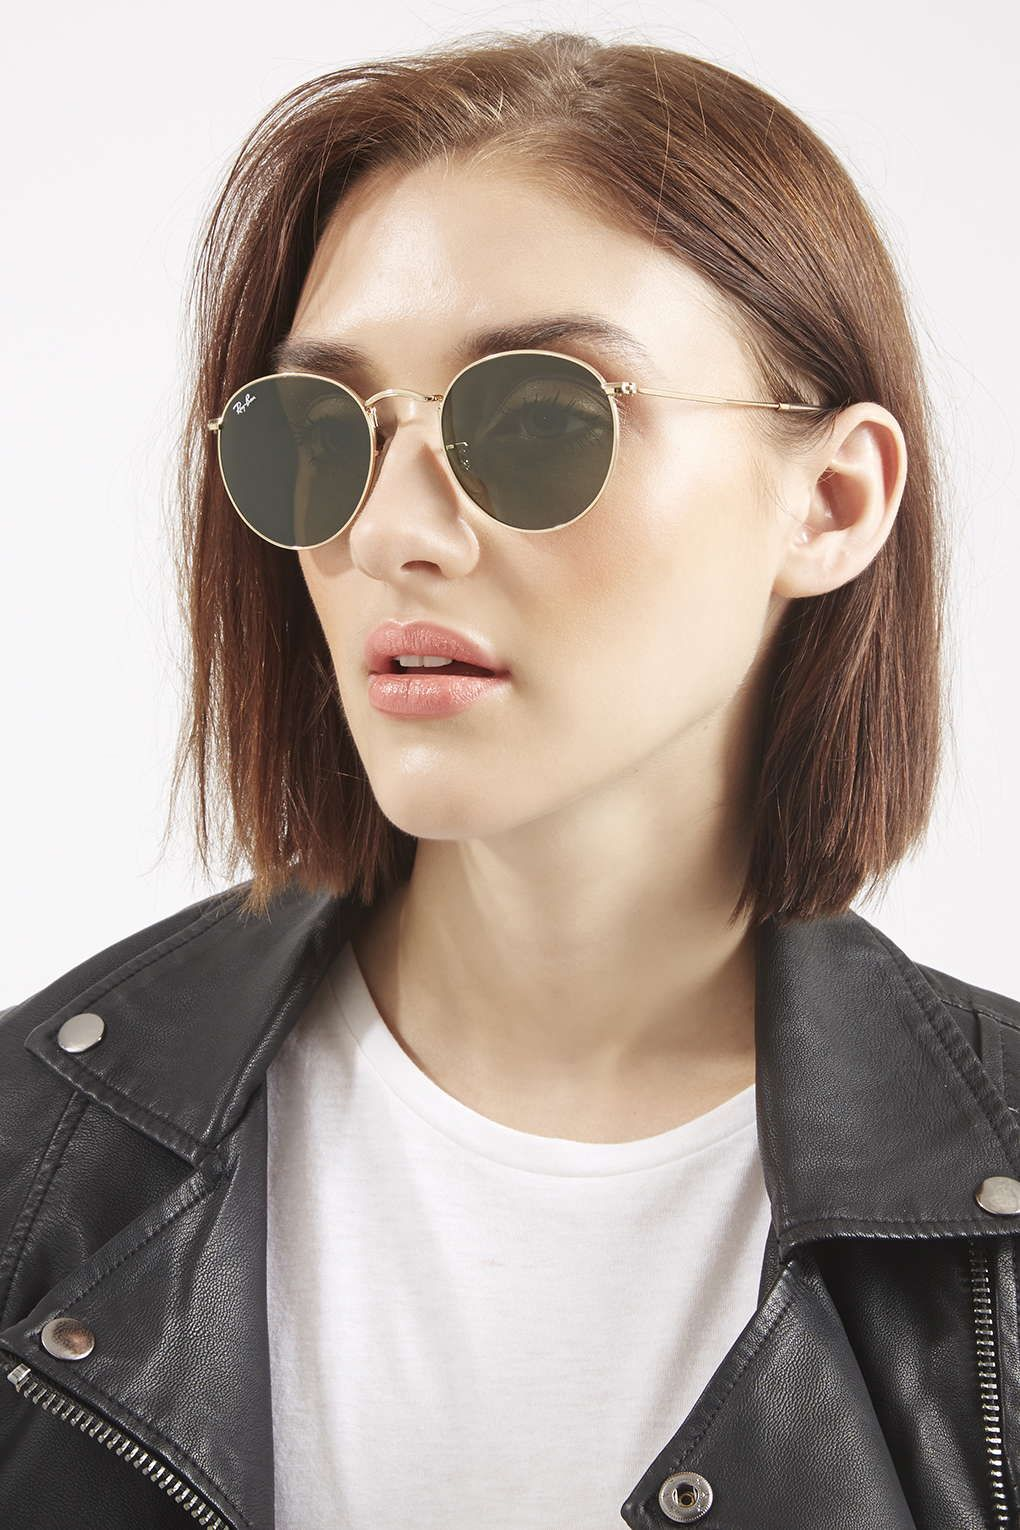 Arista Round Metal Sunglasses By Ray Ban Sunglasses Bags Accessories